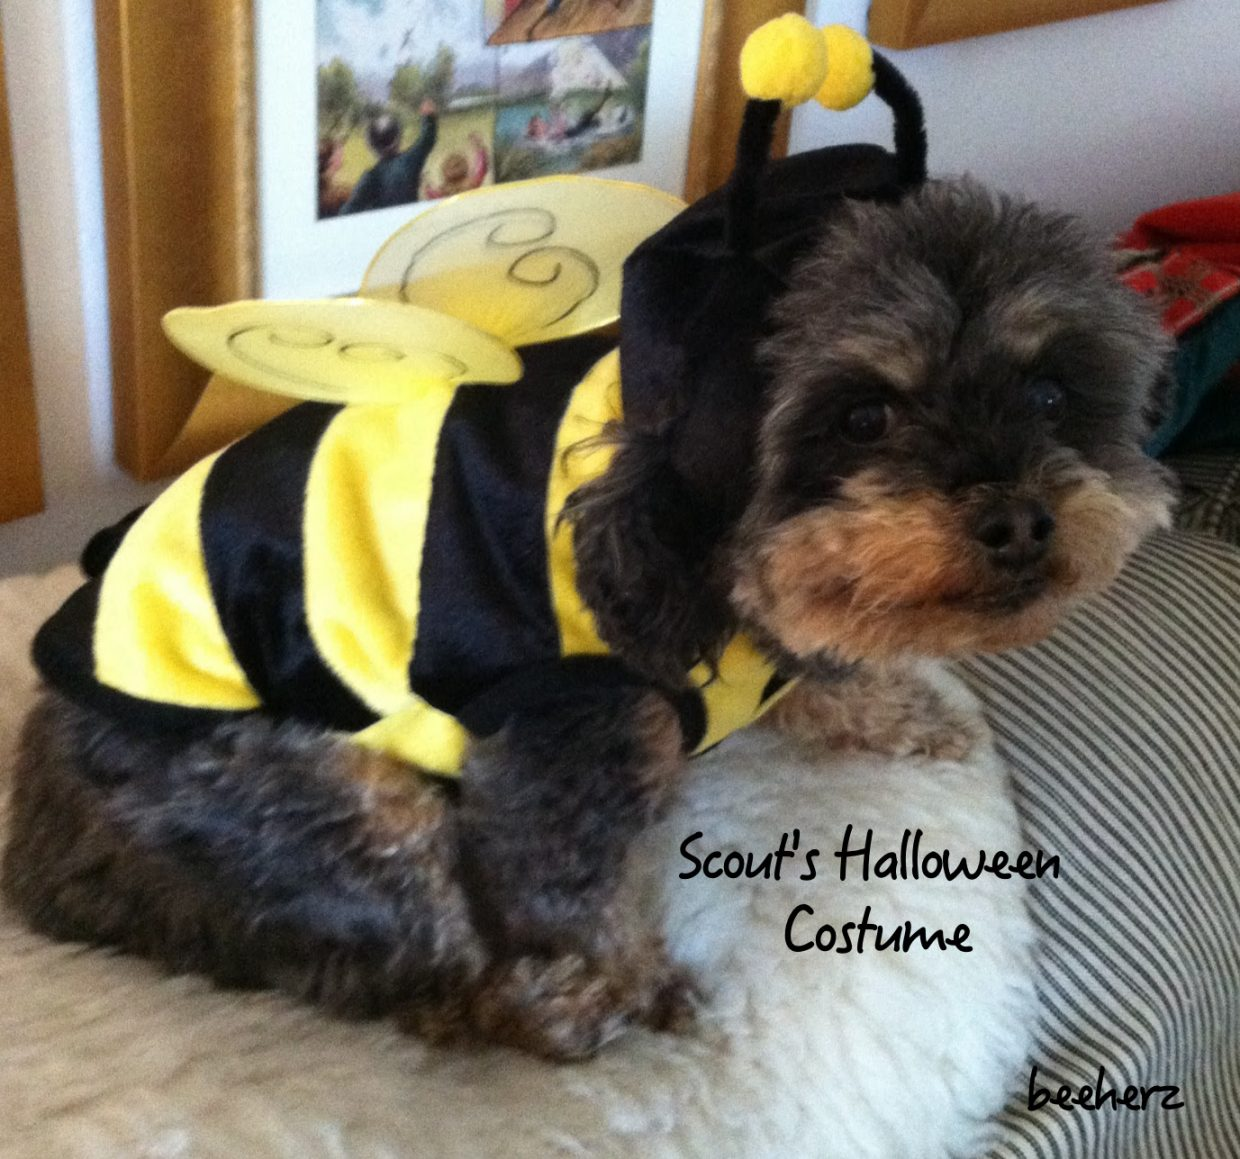 Scout, in her honey bee suit for Halloween. Submitted by: Bee Herz.